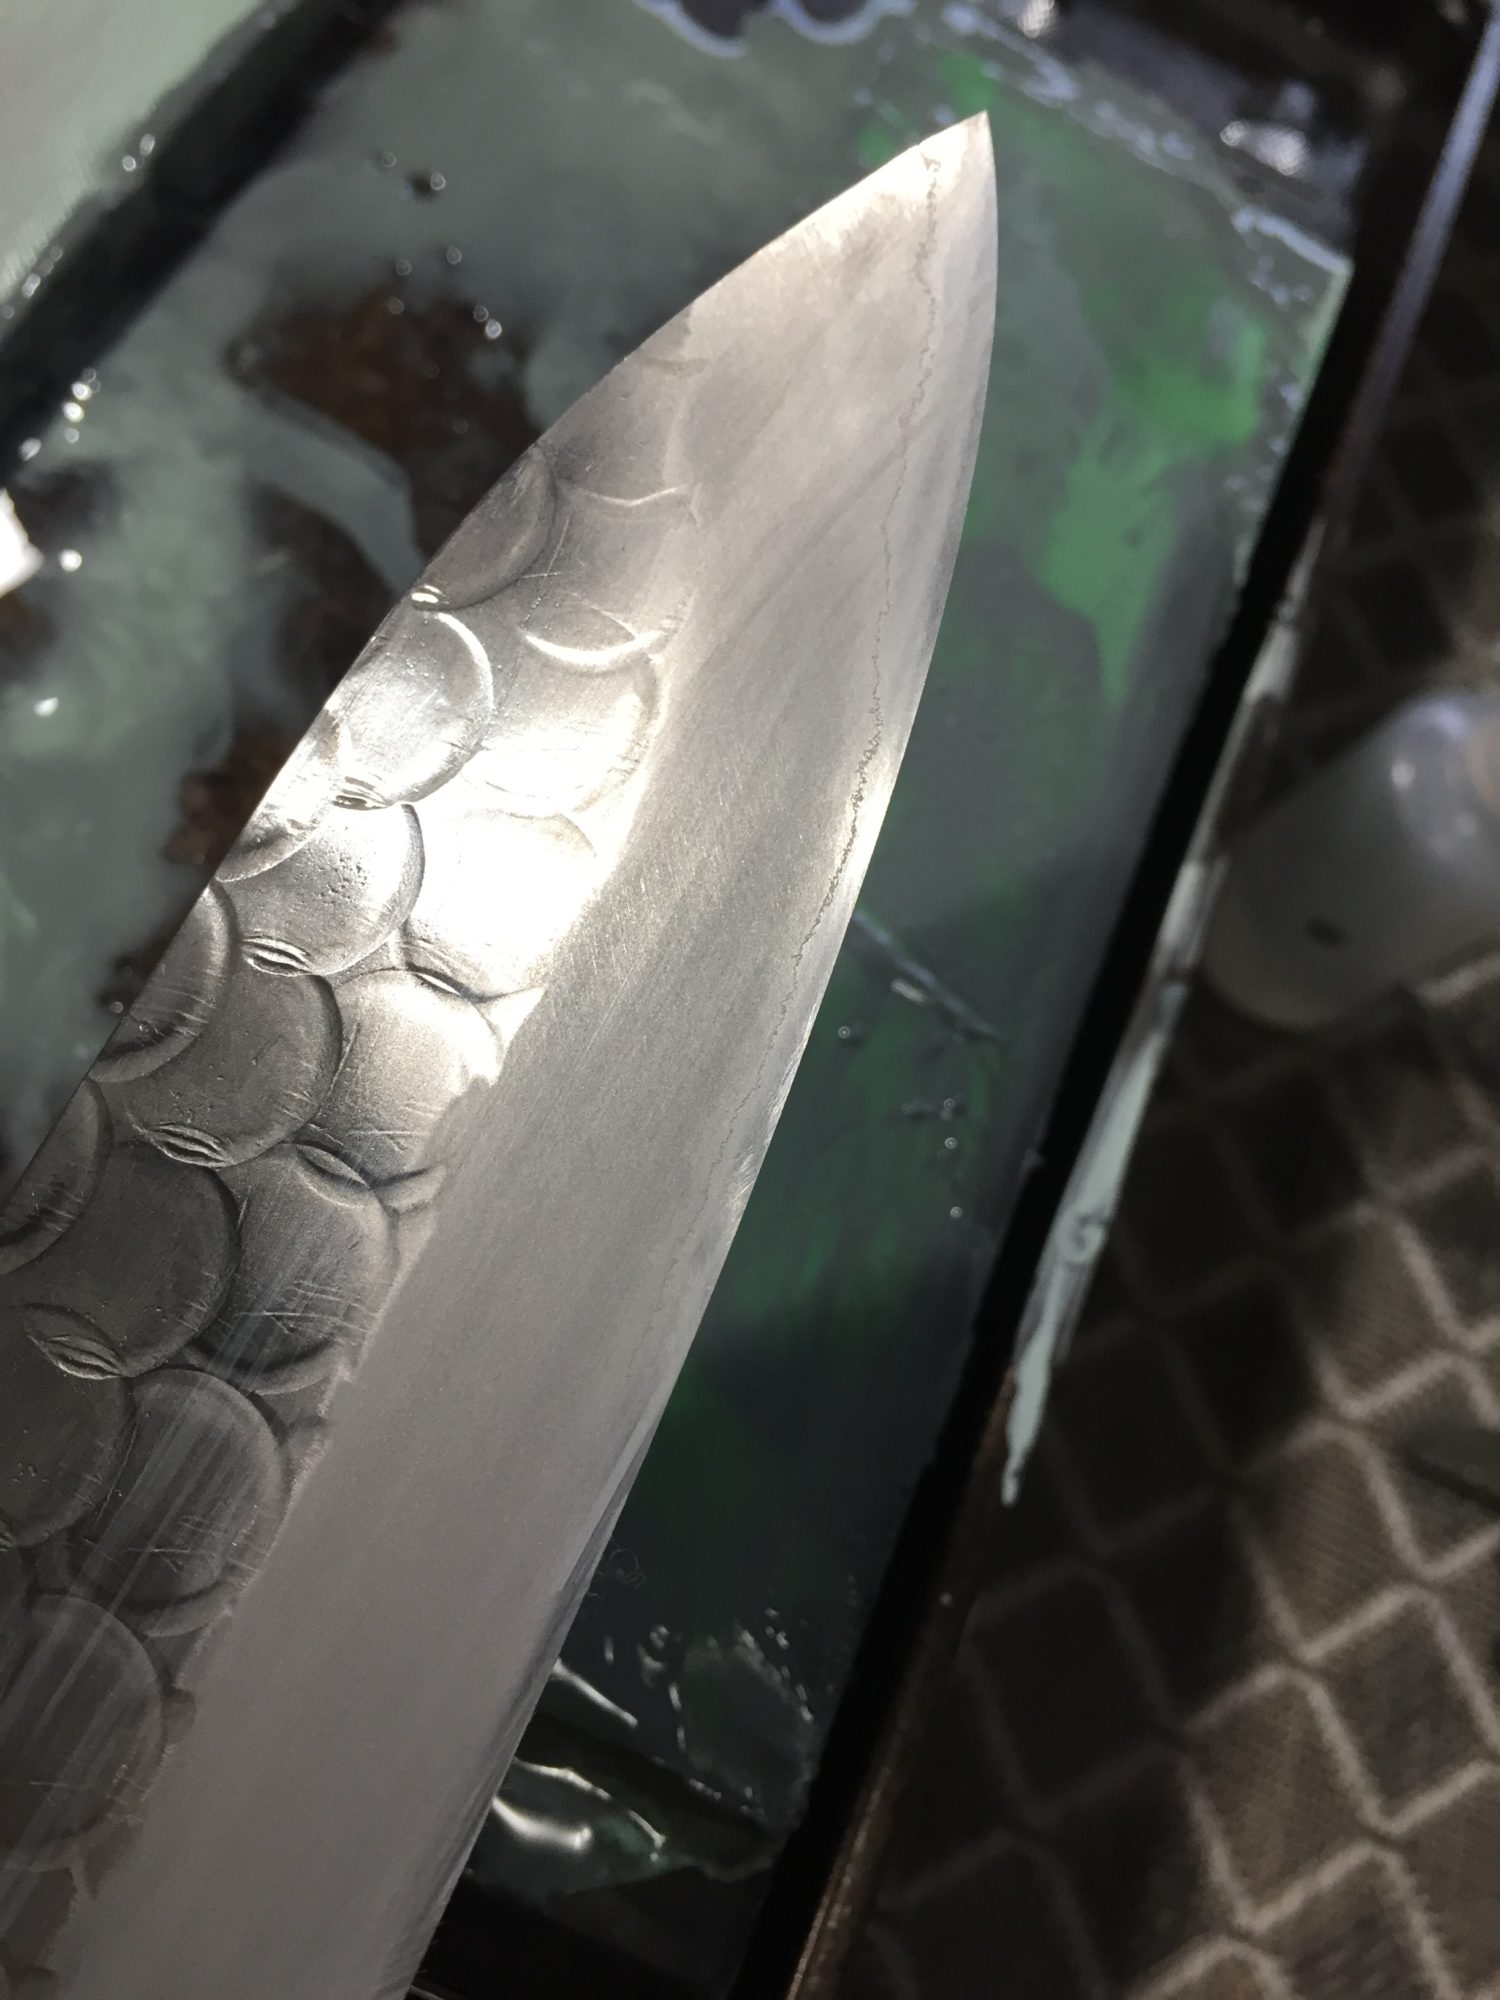 Thinning a Japanese chef knife